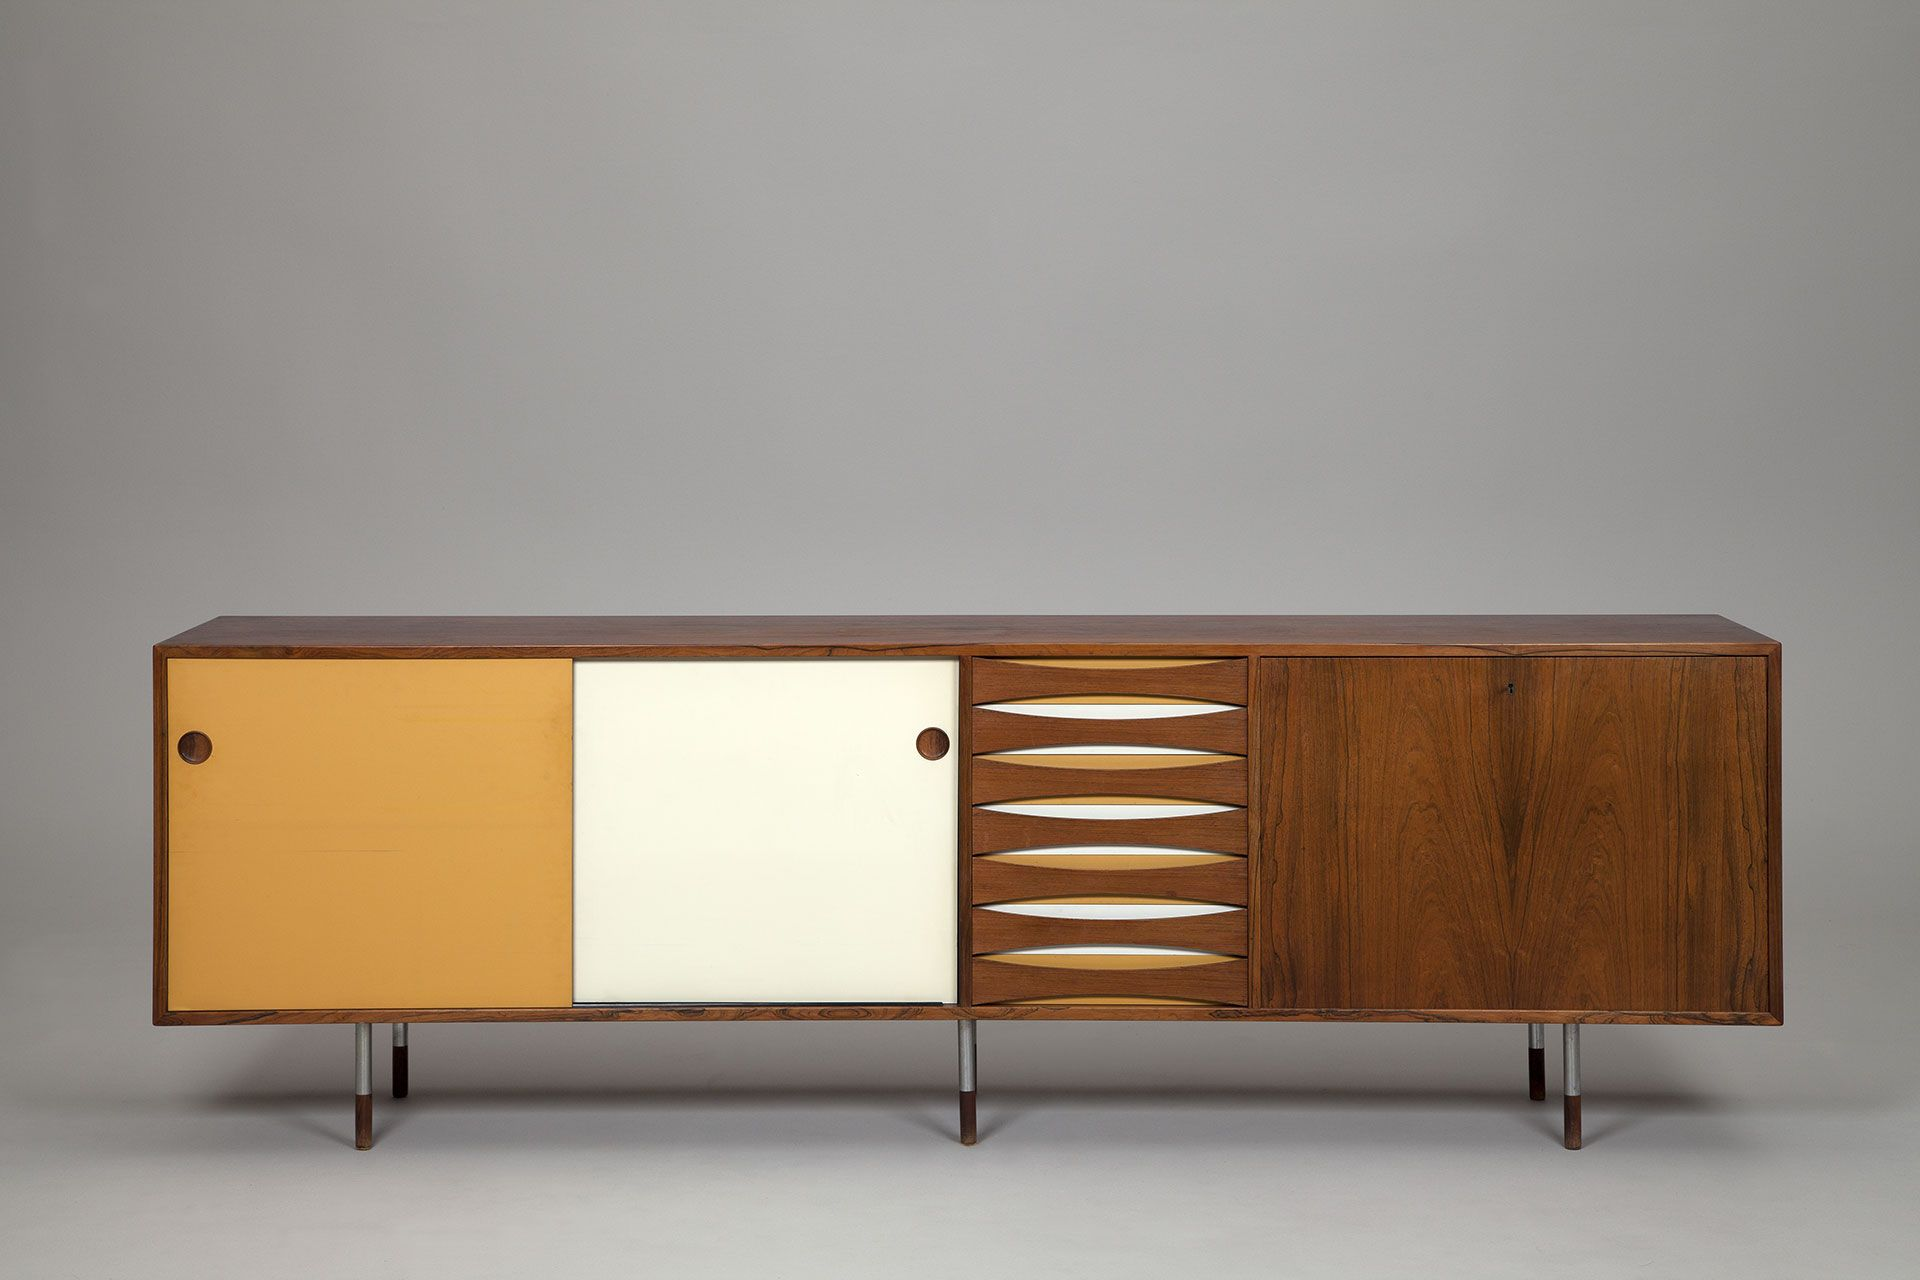 Vodder Sideboard. Rosewood cabinet with metal legs and rosewood feet. Drop leaf bar with laminated surface. Interior of light wood, adjustable shelves. Reversible doors in original painted white, yellow and rosewood back. Six drawers with background of original yellow, white and rosewood. Rosewood backside. Produced by Sibast A/S.